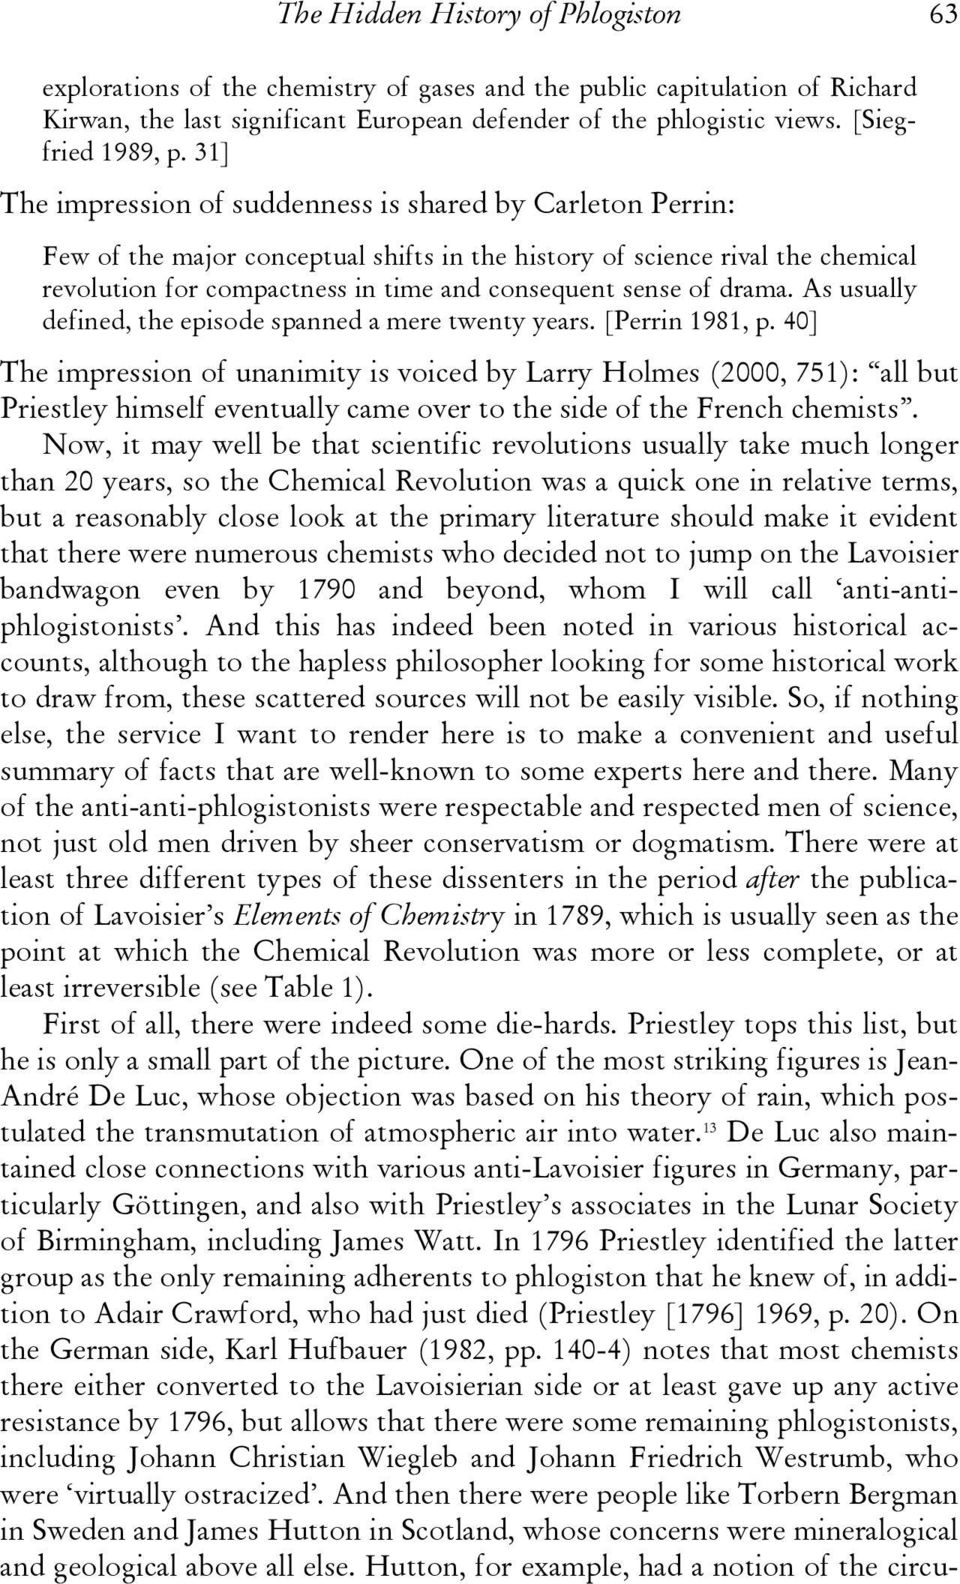 31] The impression of suddenness is shared by Carleton Perrin: Few of the major conceptual shifts in the history of science rival the chemical revolution for compactness in time and consequent sense